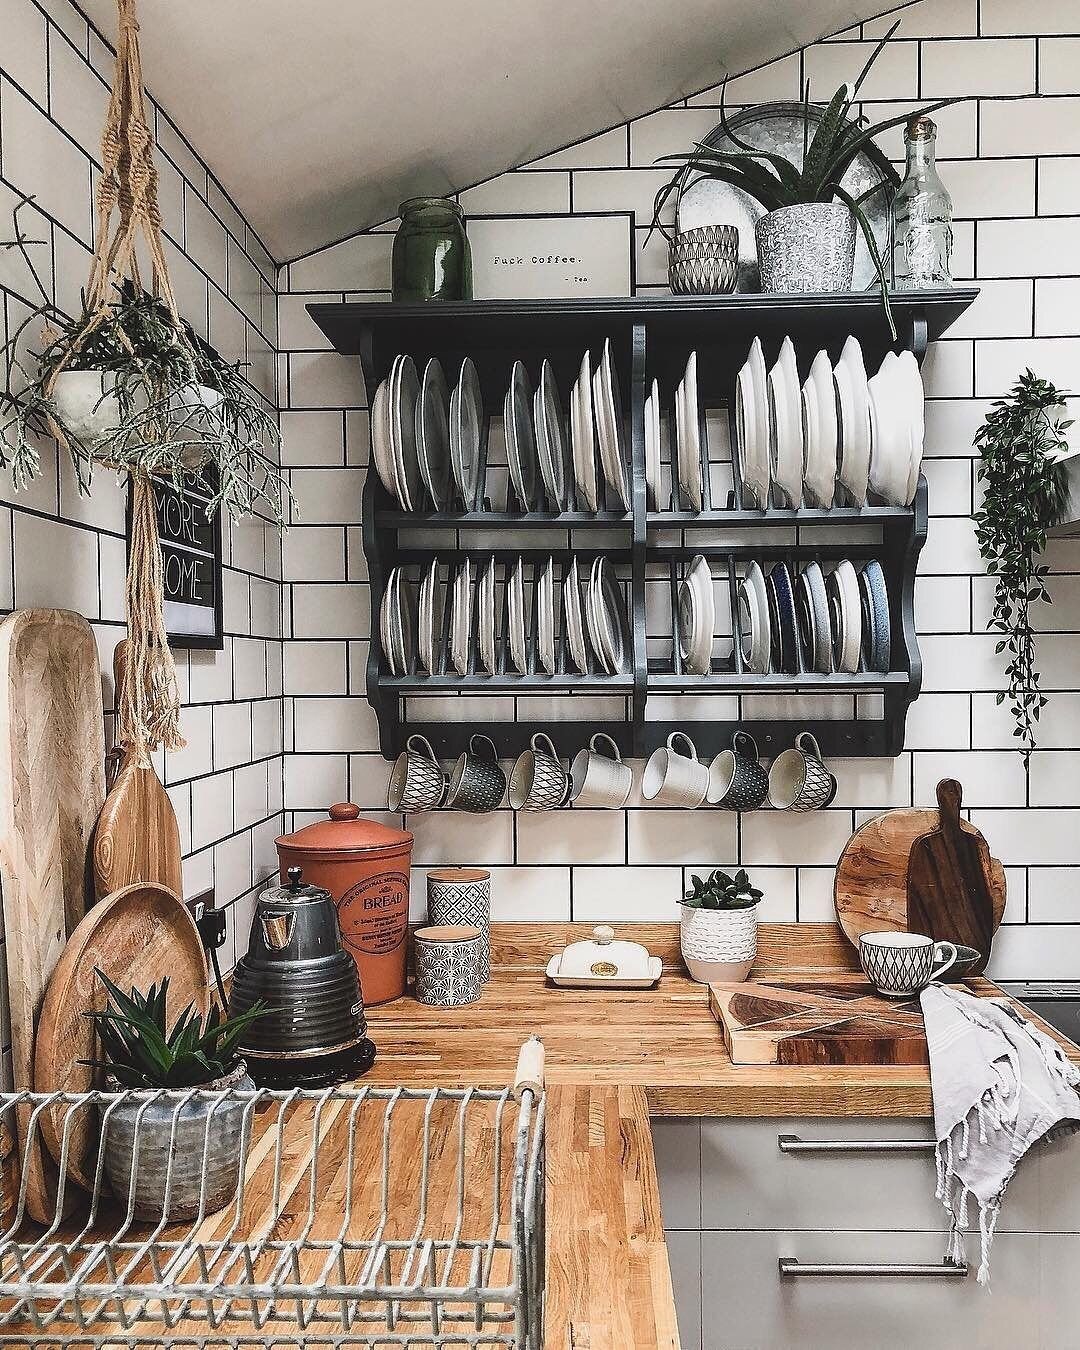 Apartment Therapy On Instagram Whatta Kitchen Image The Indigo House Kitchen Inspirations Modern Home Furniture Home